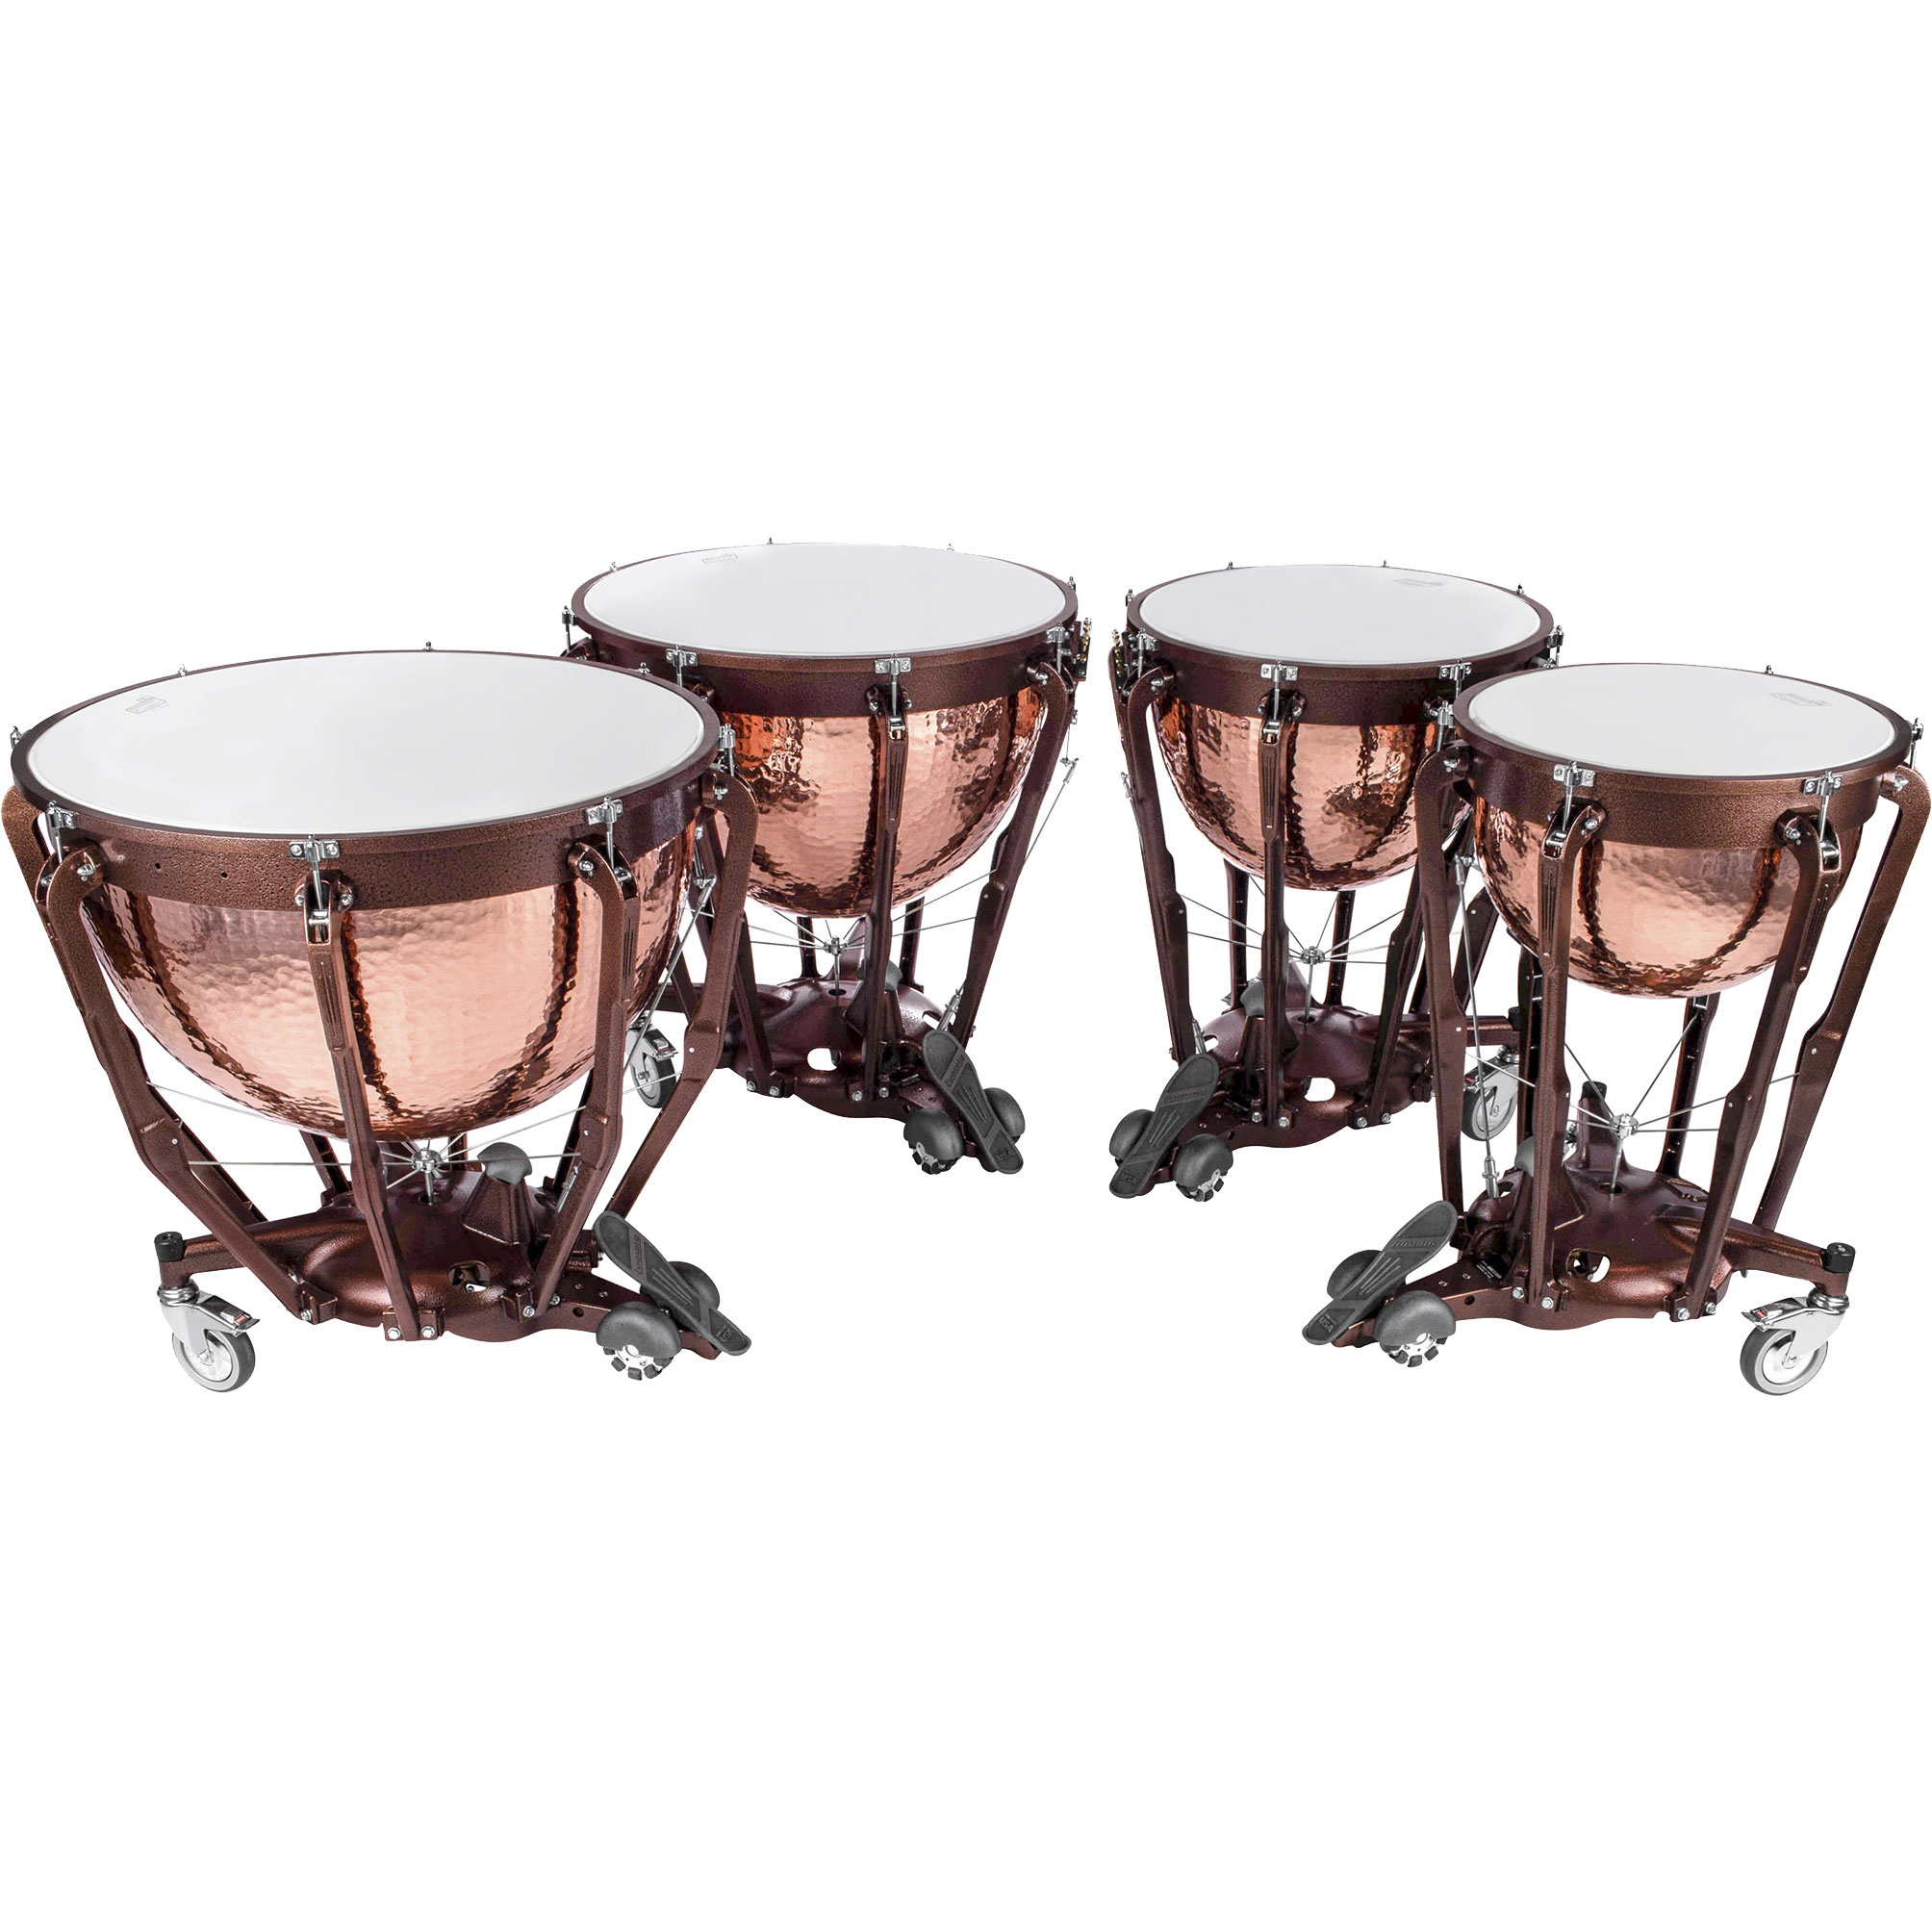 "Ludwig 23/26/29/32"" Professional Series Hammered Copper Timpani Set"